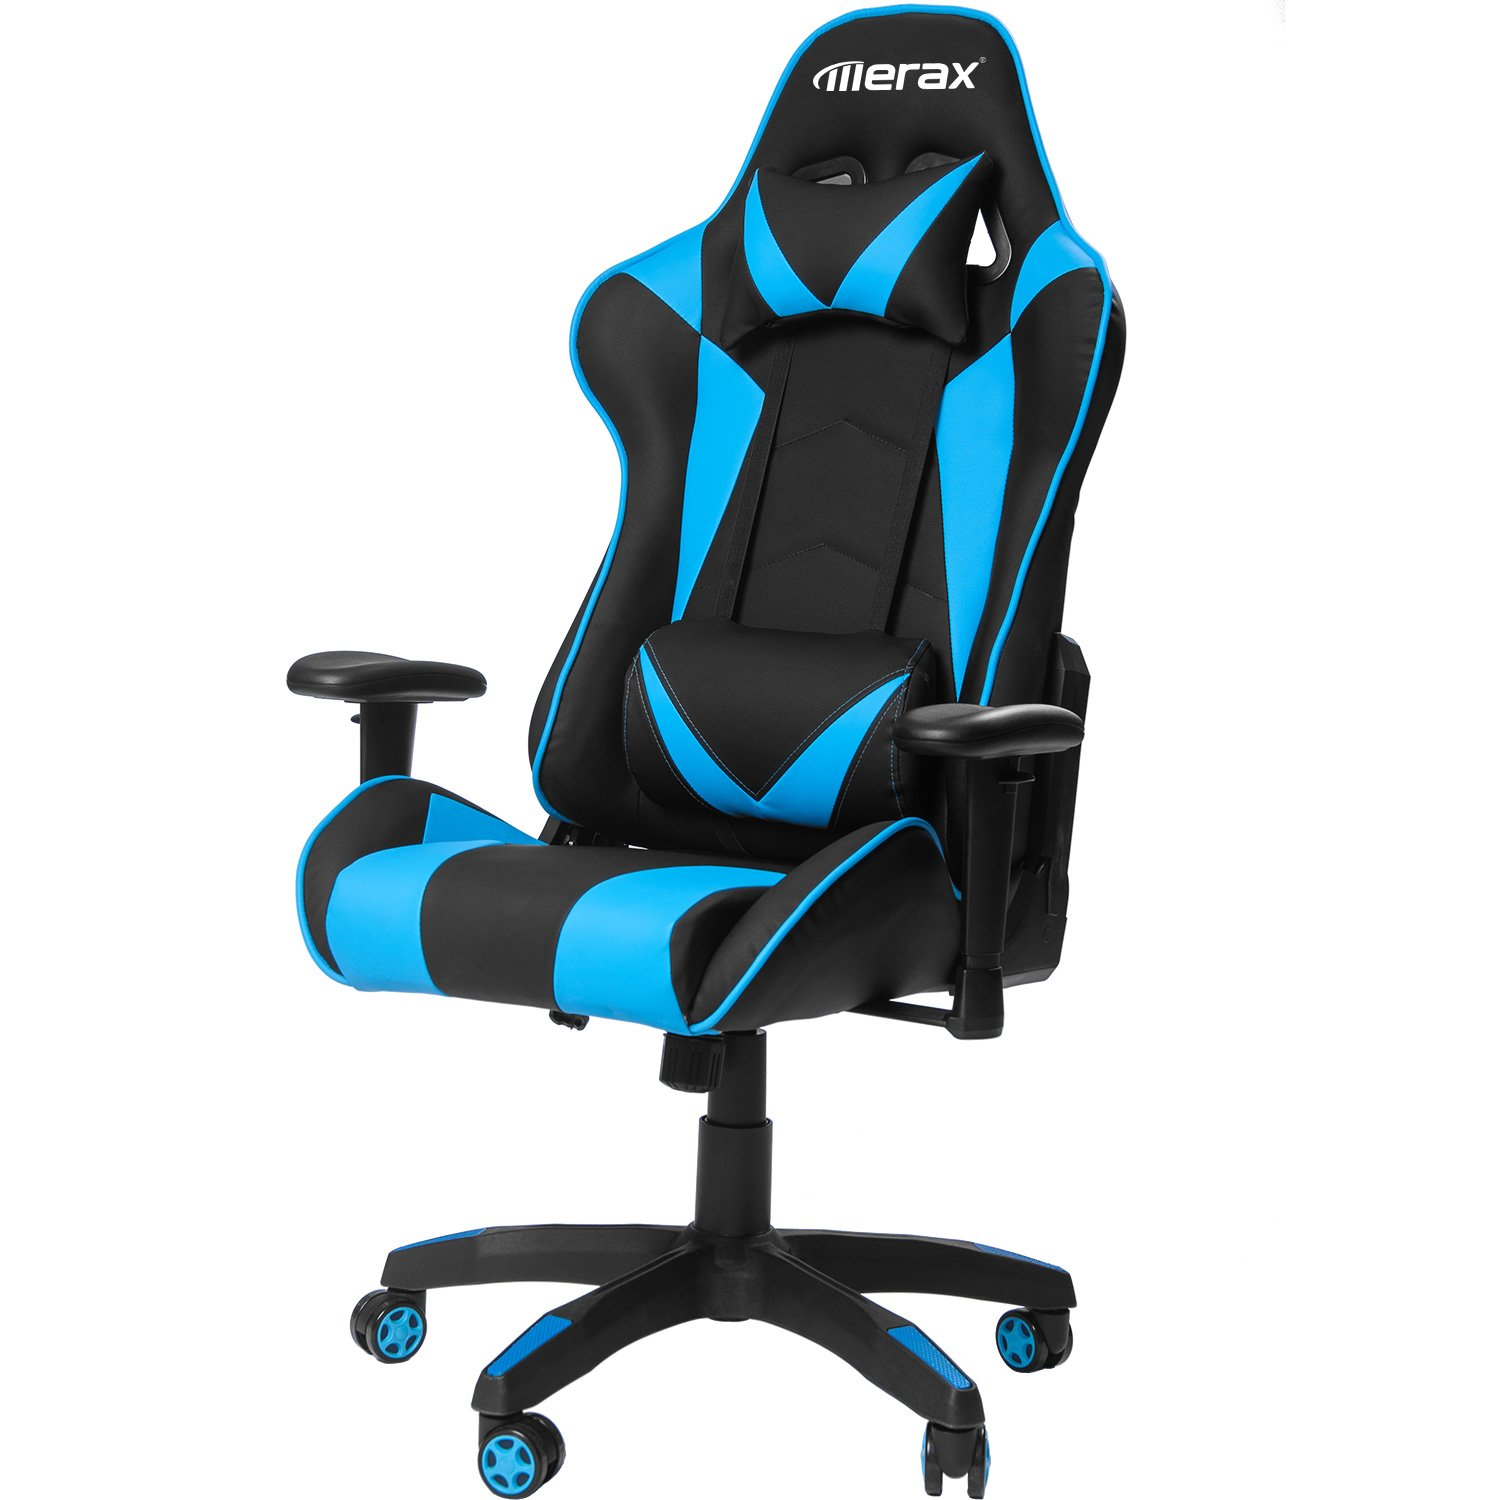 Amazon Merax Gaming Chair High Back puter Chair Ergonomic